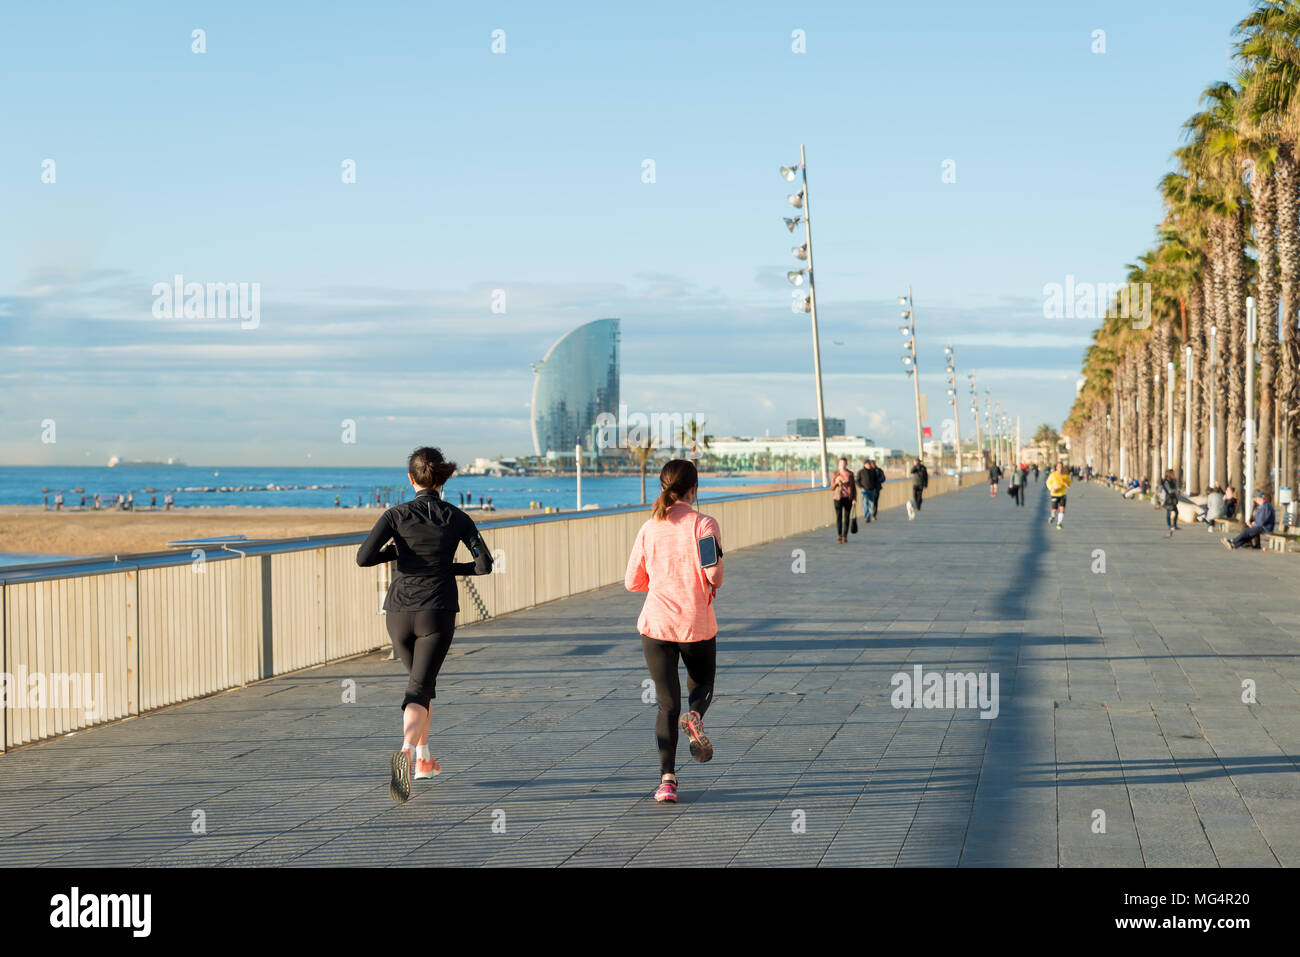 96aaf193c84a2 Running jogging on Barcelona Beach, Barceloneta. Healthy lifestyle people  runners training outside on boardwalk. Multiracial couple, Asian woma fitnes